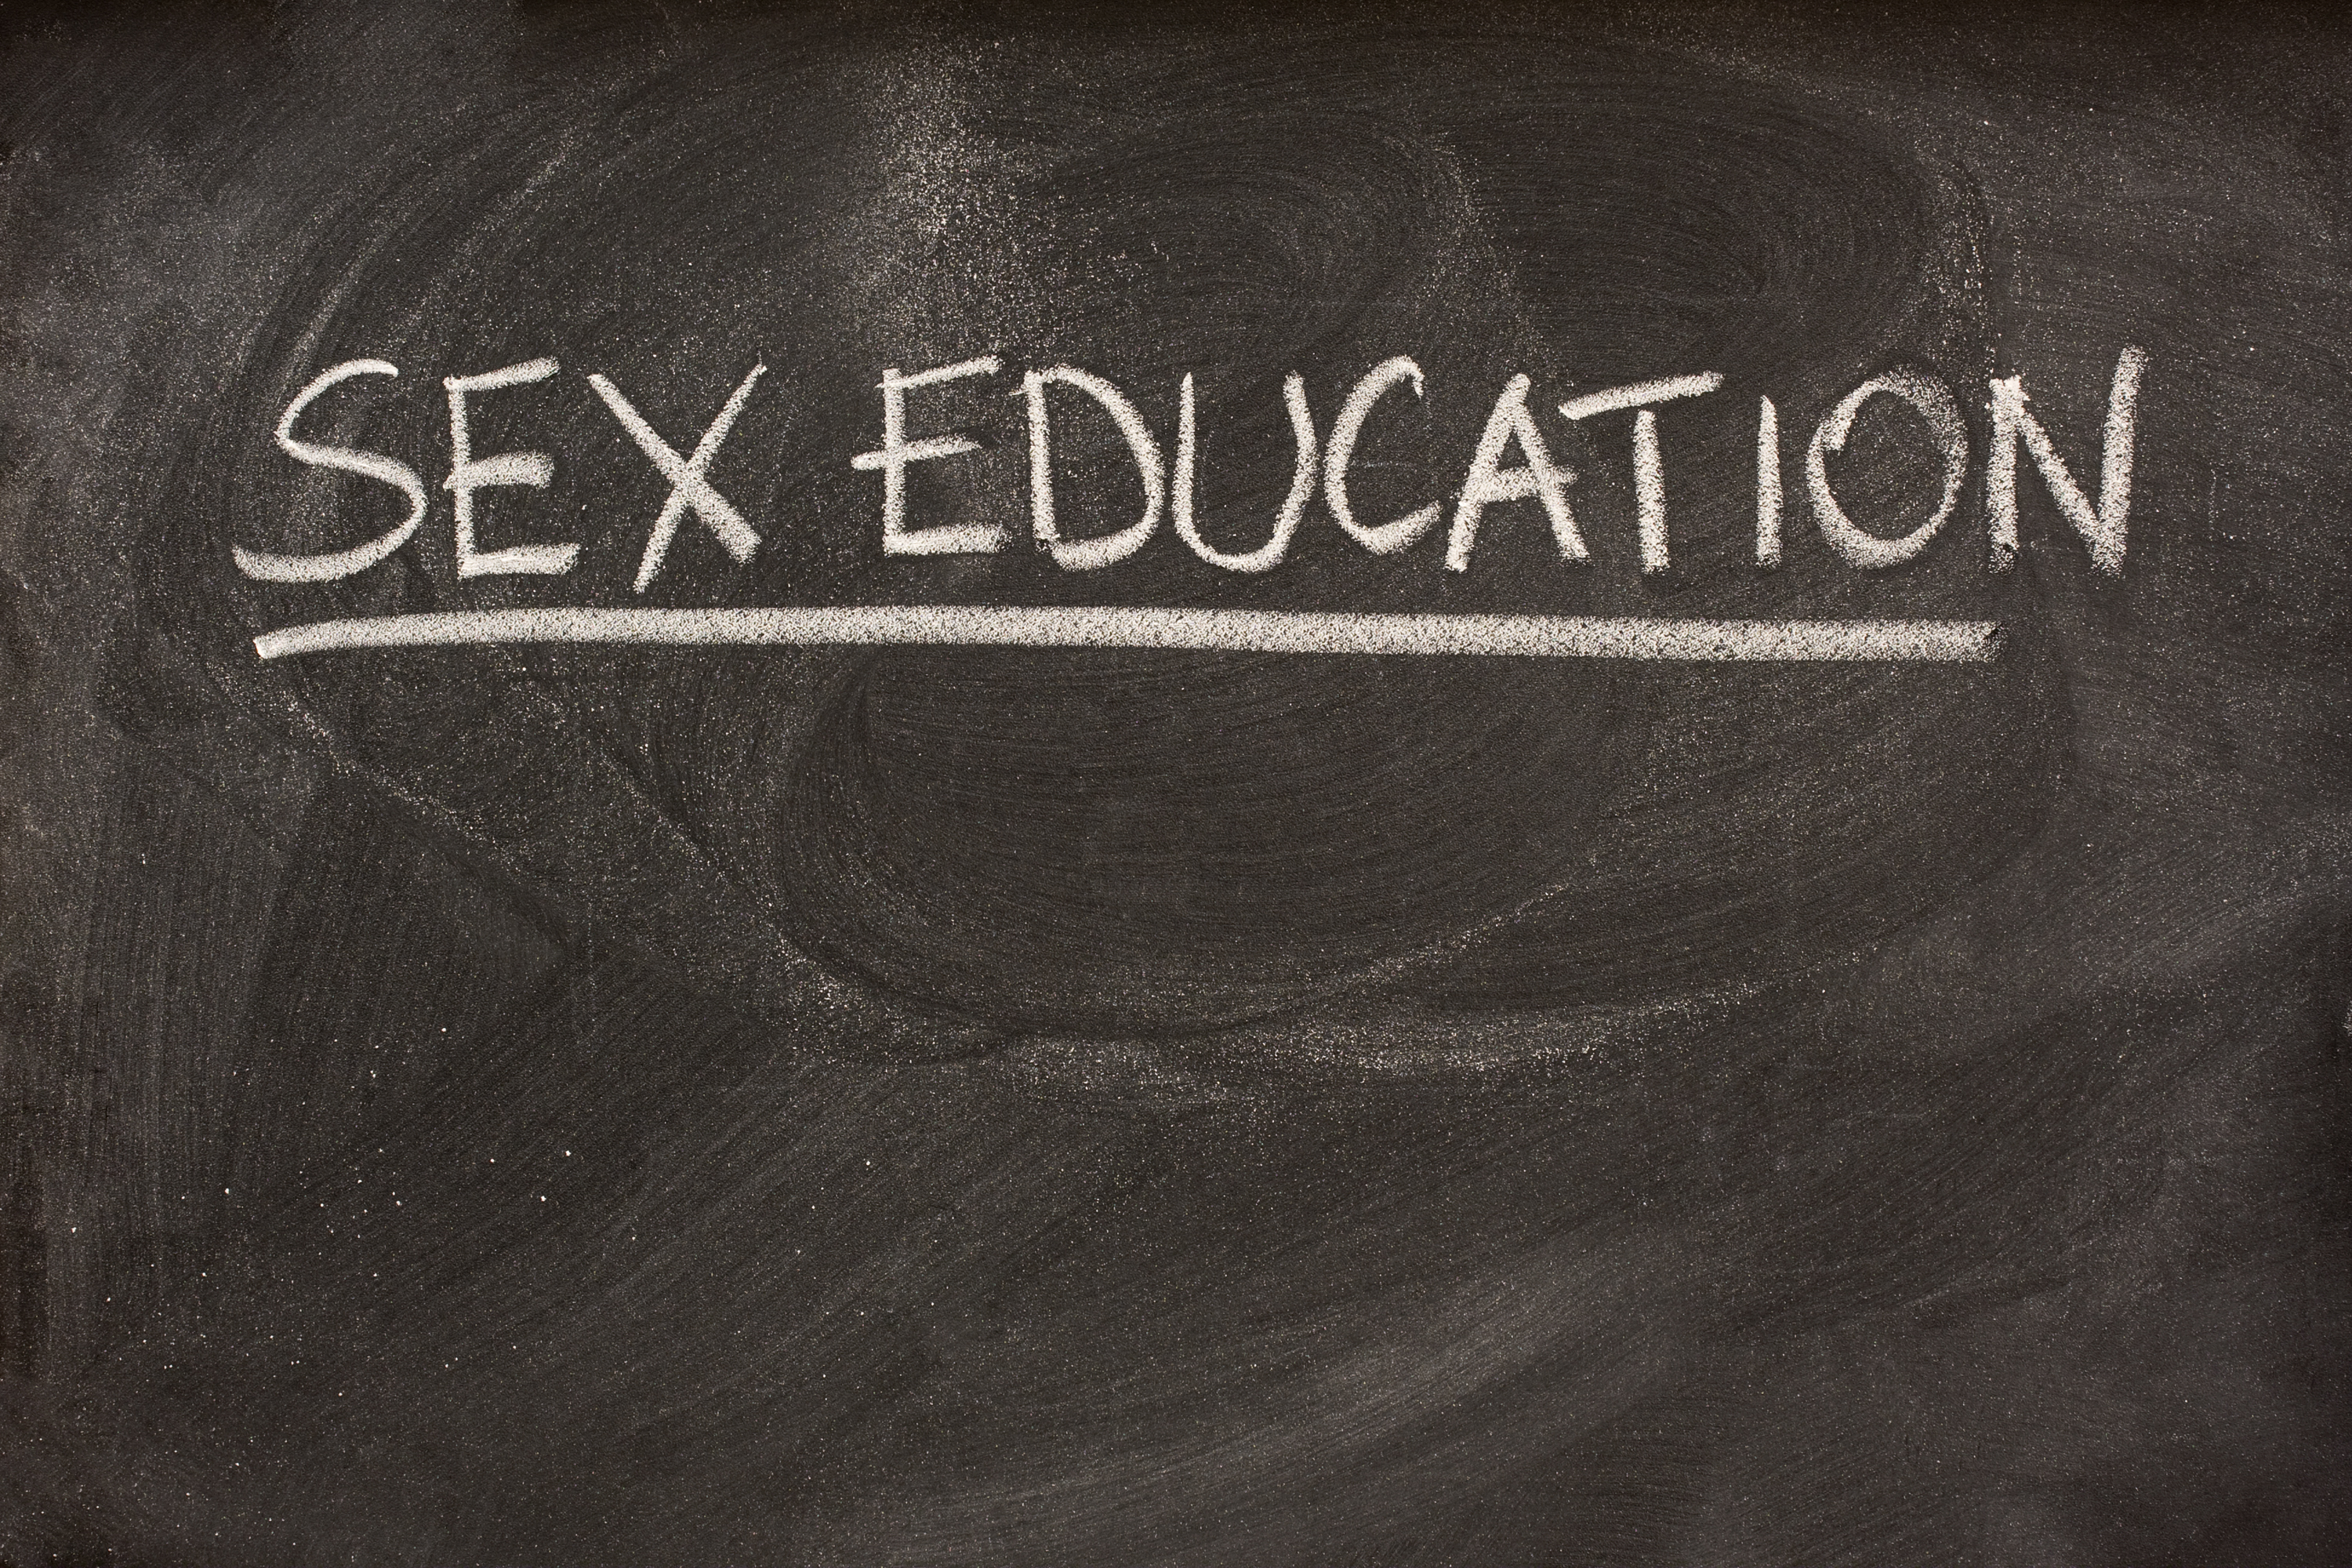 Christians are not against sex education!